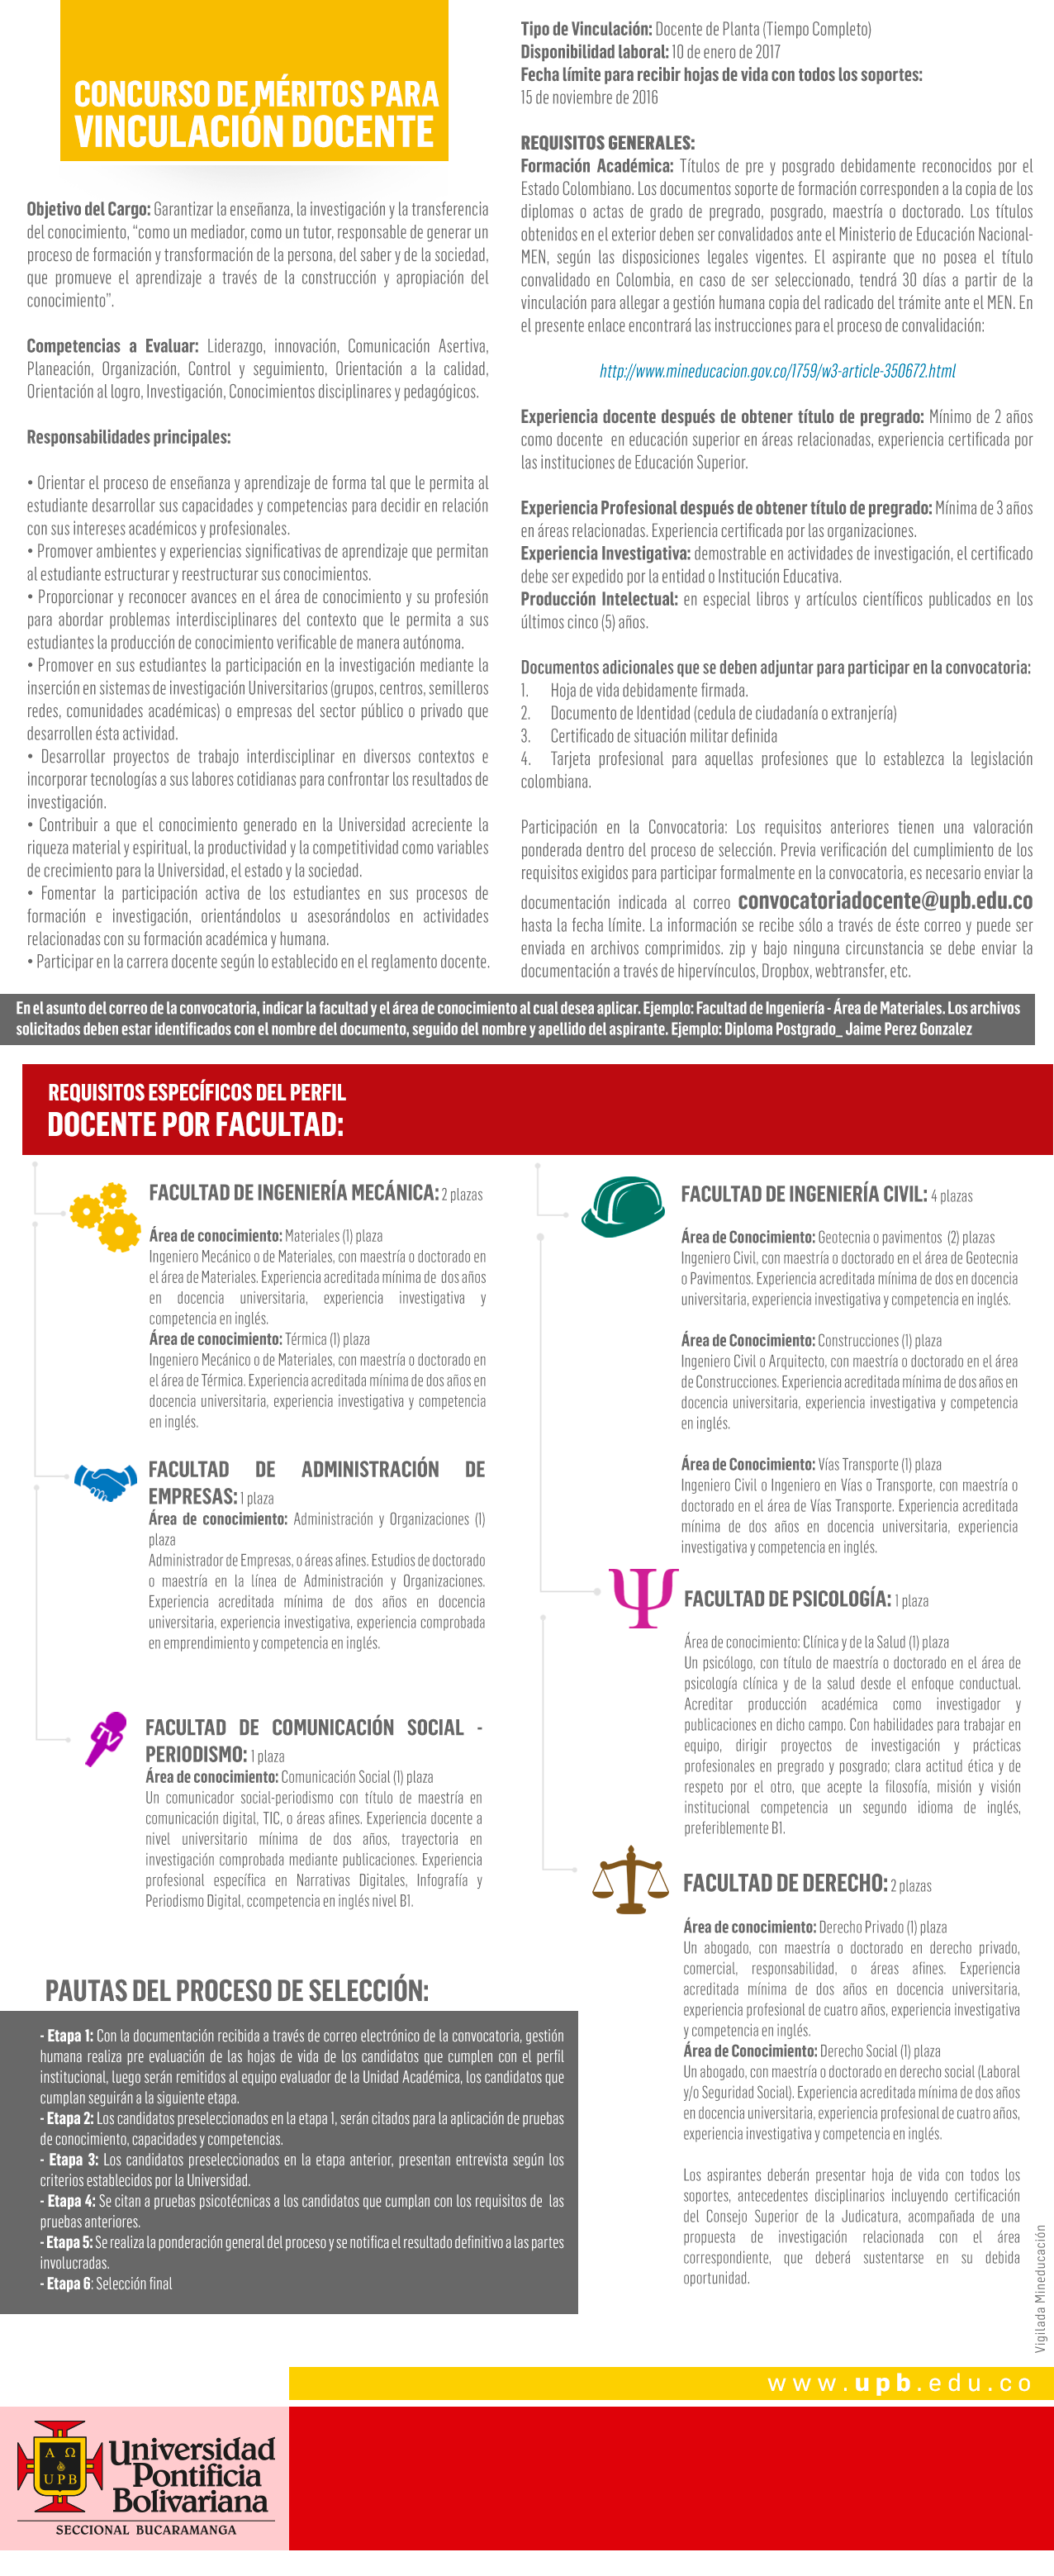 convocatoria docente universidad pontificia bolivariana